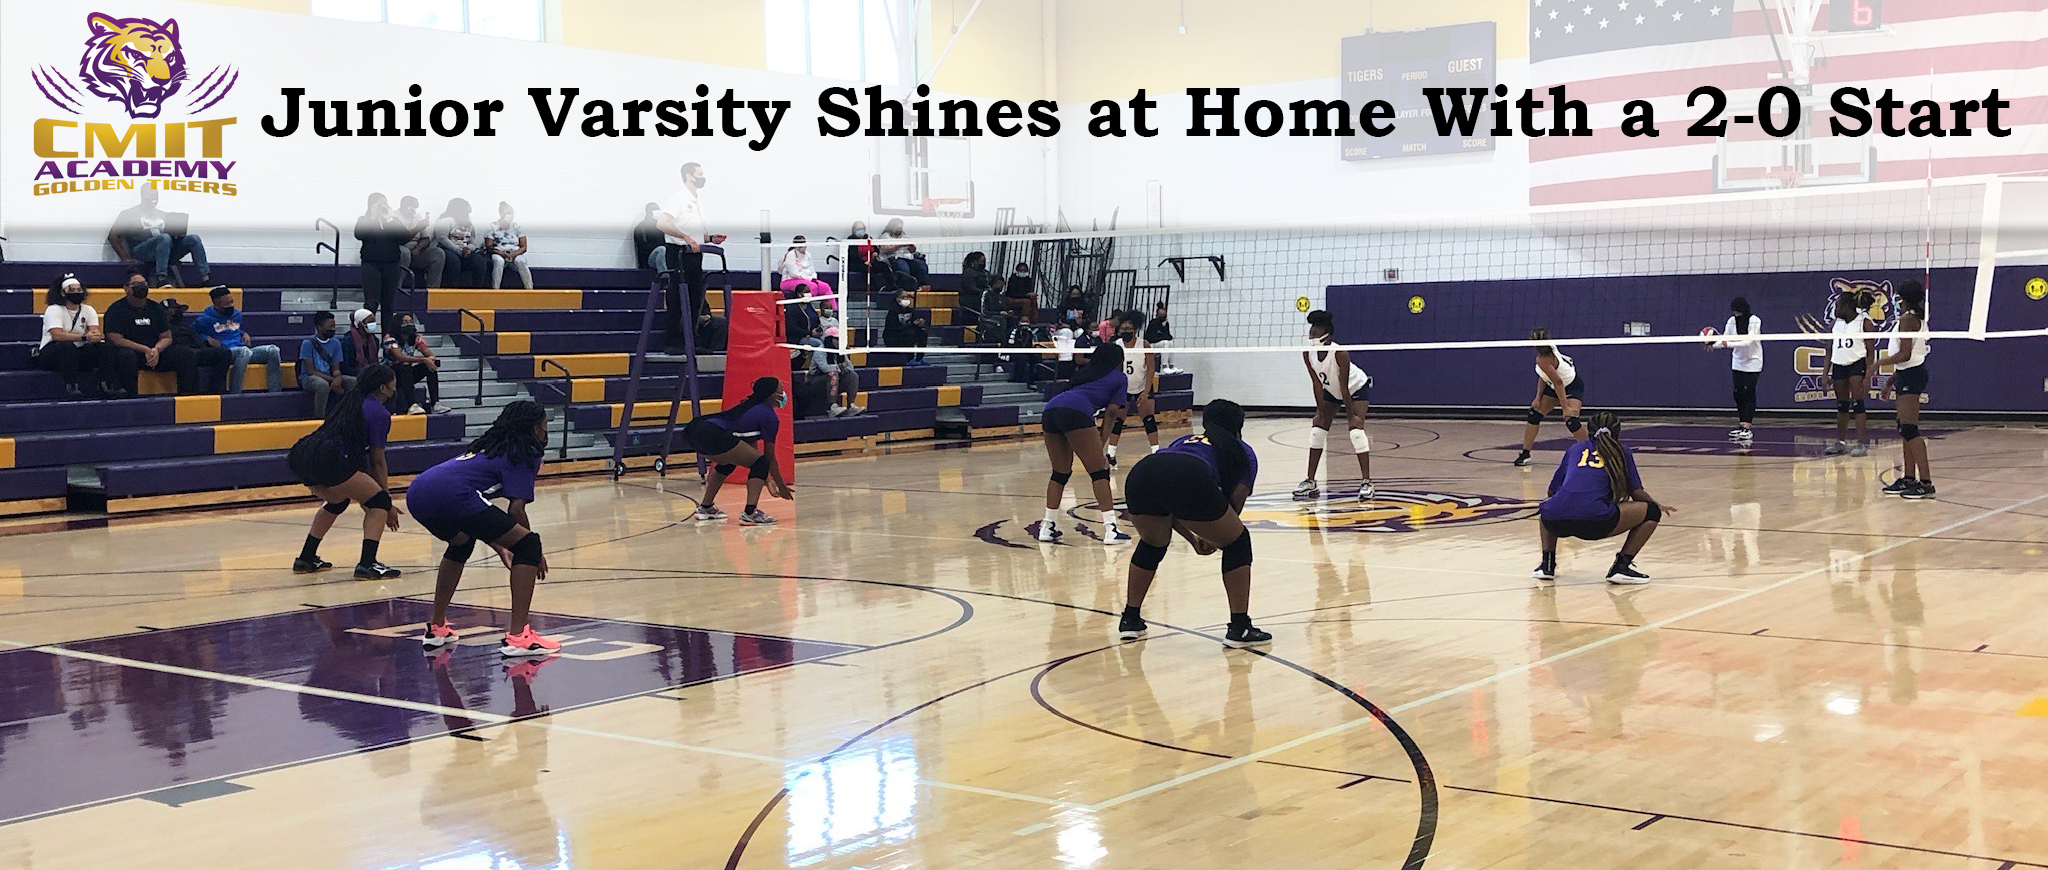 Junior Varsity Shines at Home With a 2-0 Start